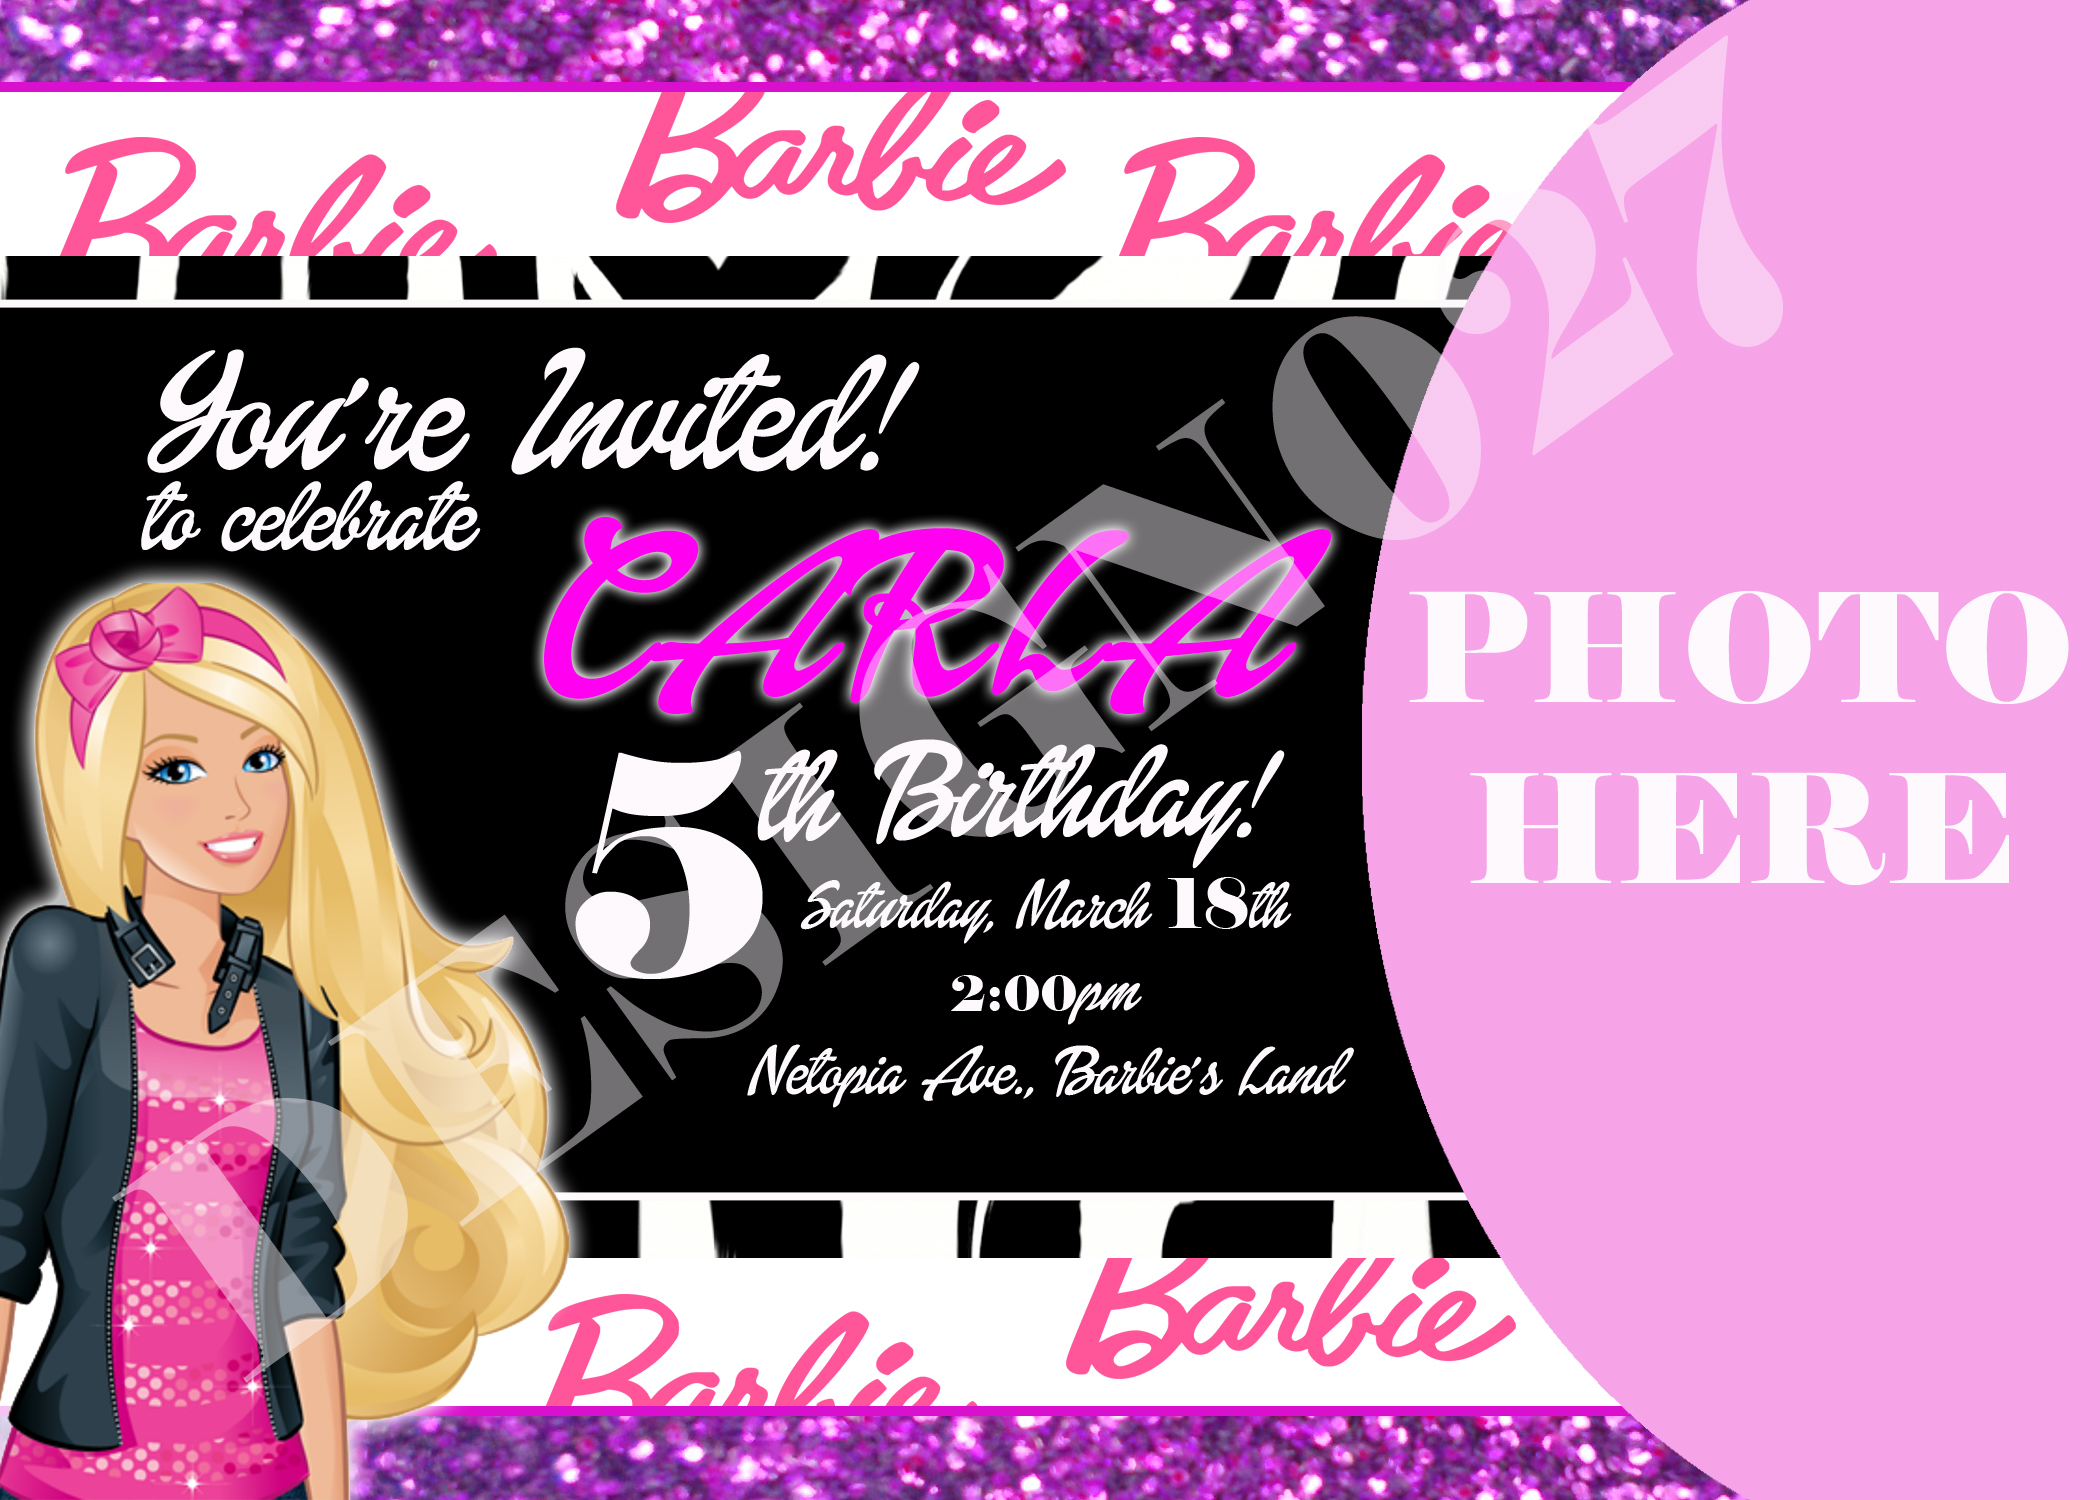 Invitation Card and Banners